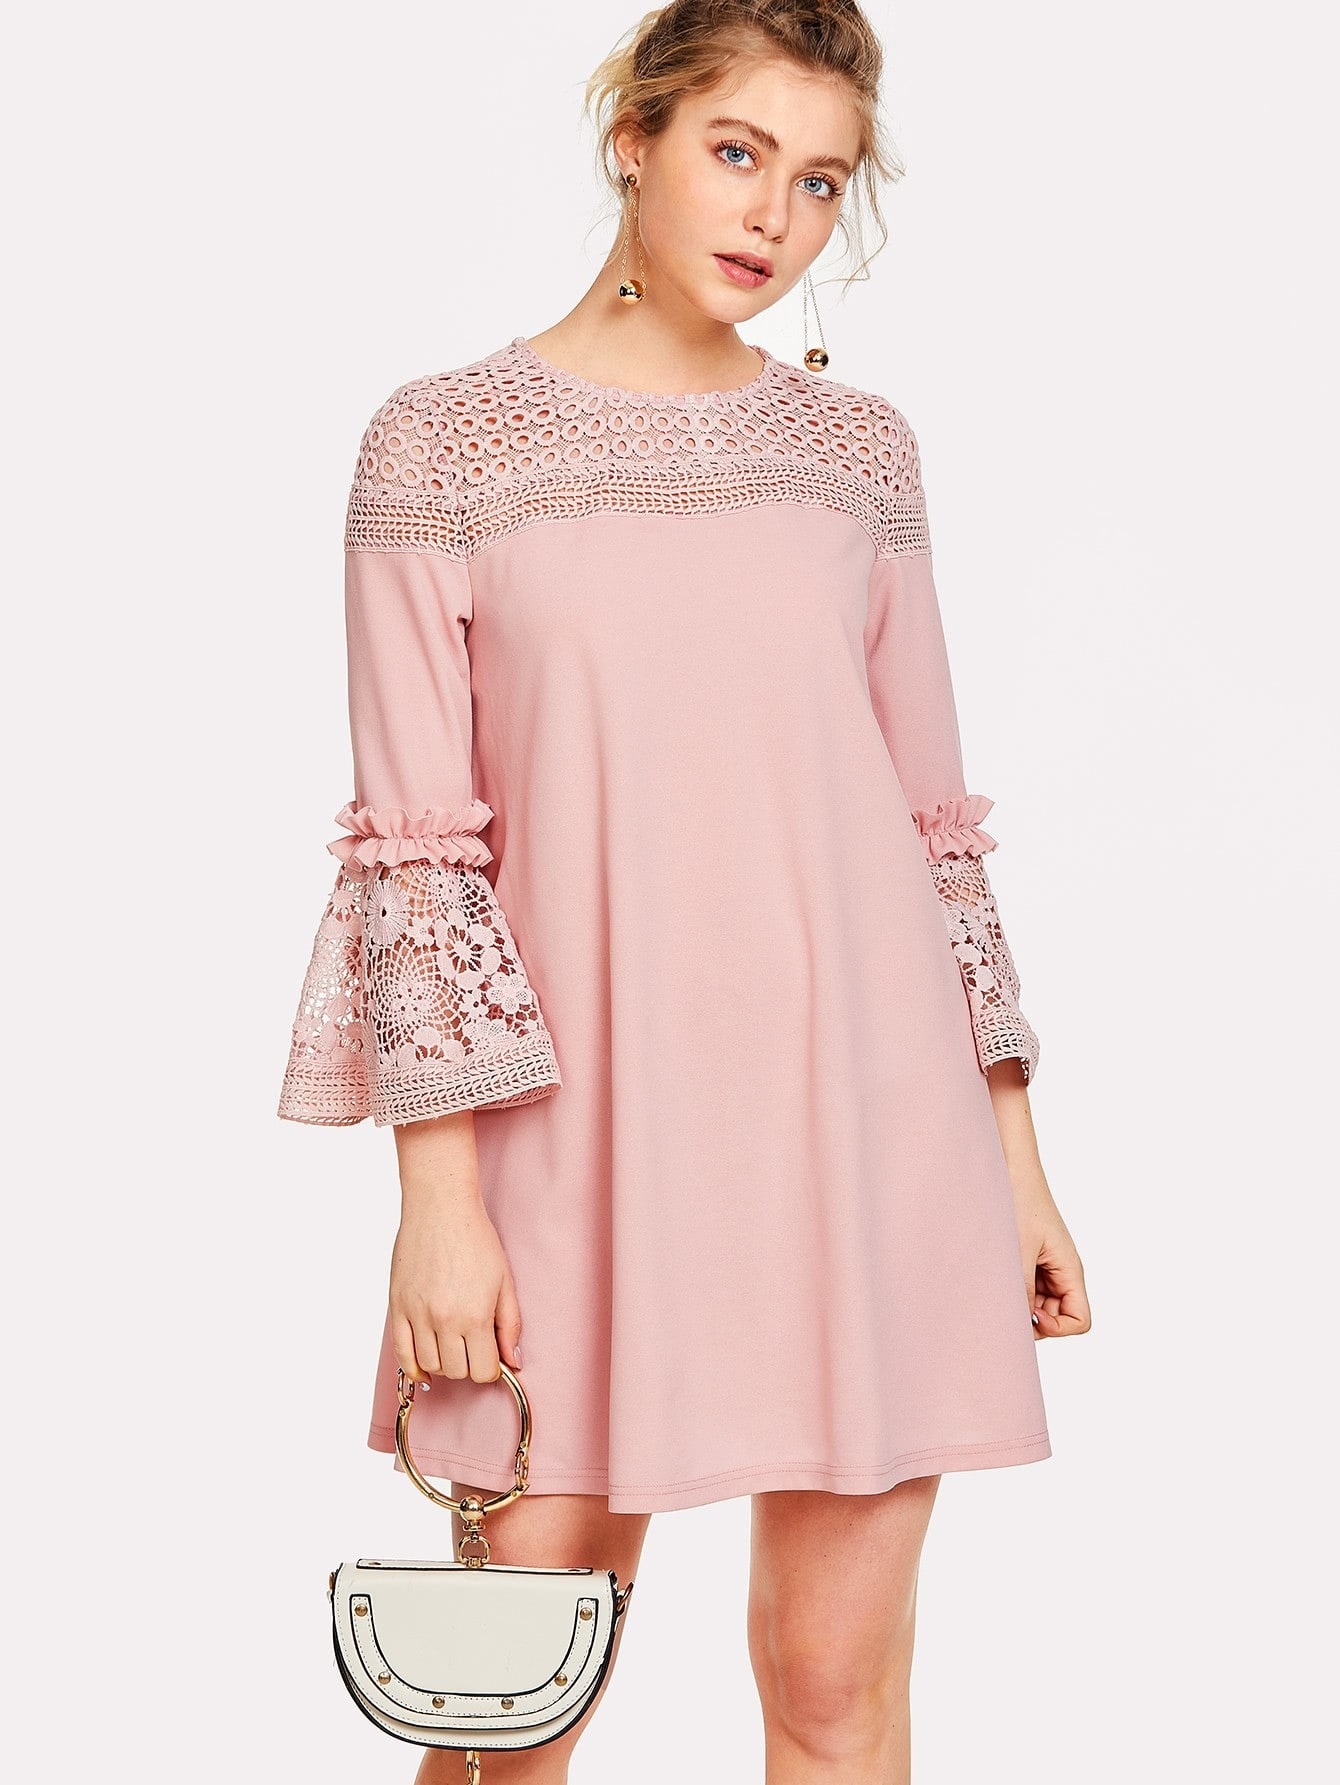 Eyelet Crochet Lace Detail Frill Trim Dress frill detail crochet insert embroidered mesh top